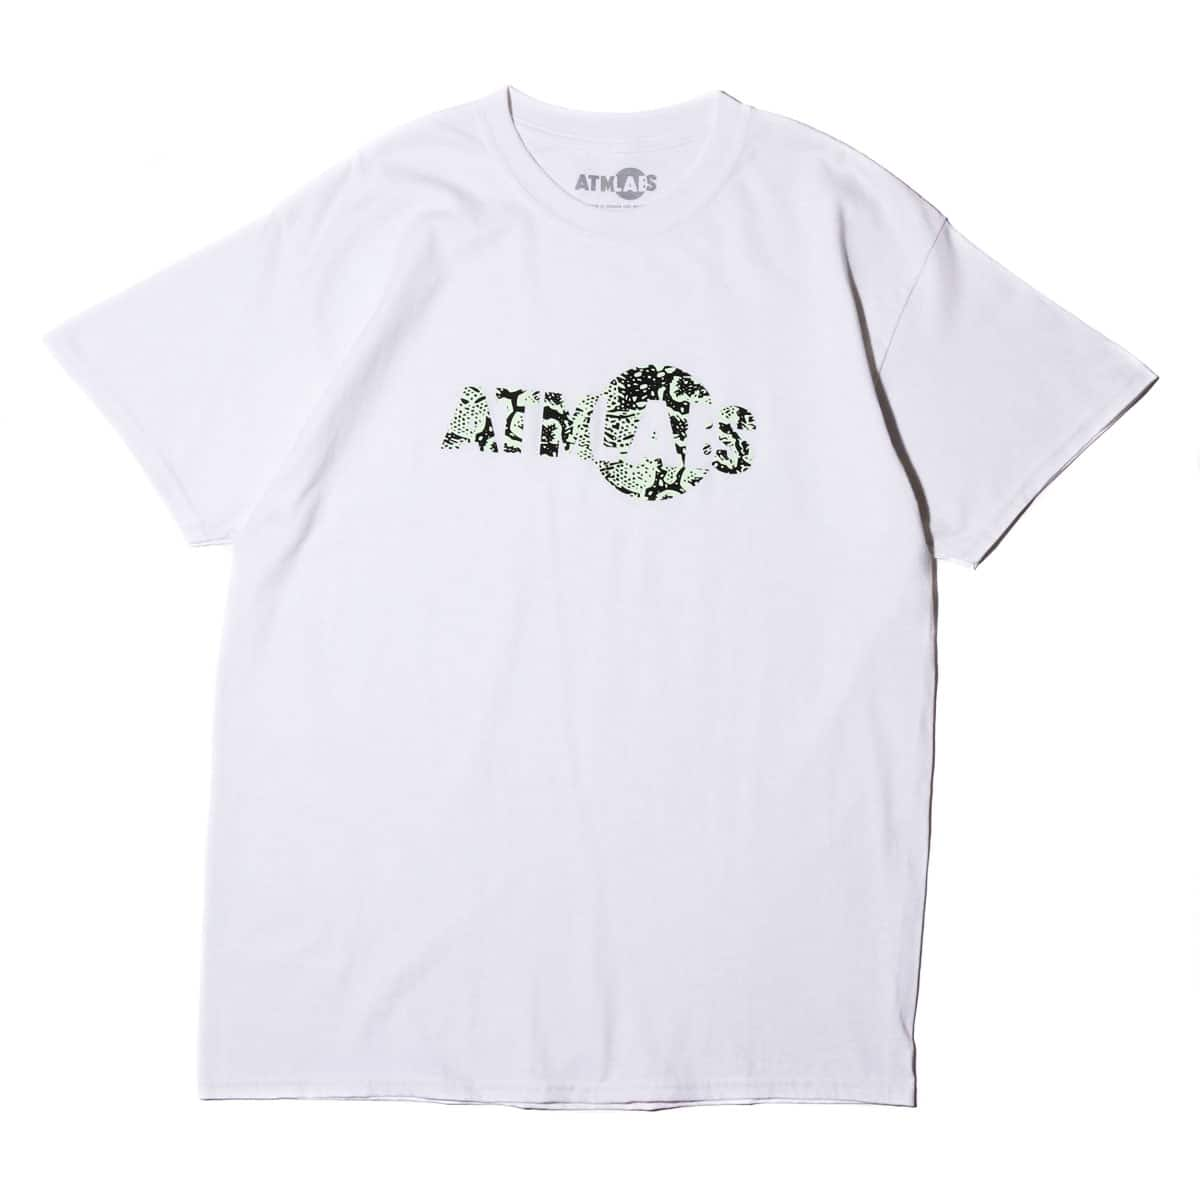 ATMOS LAB LOGO TEE G-SNAKE WHITE 19FW-S_photo_large